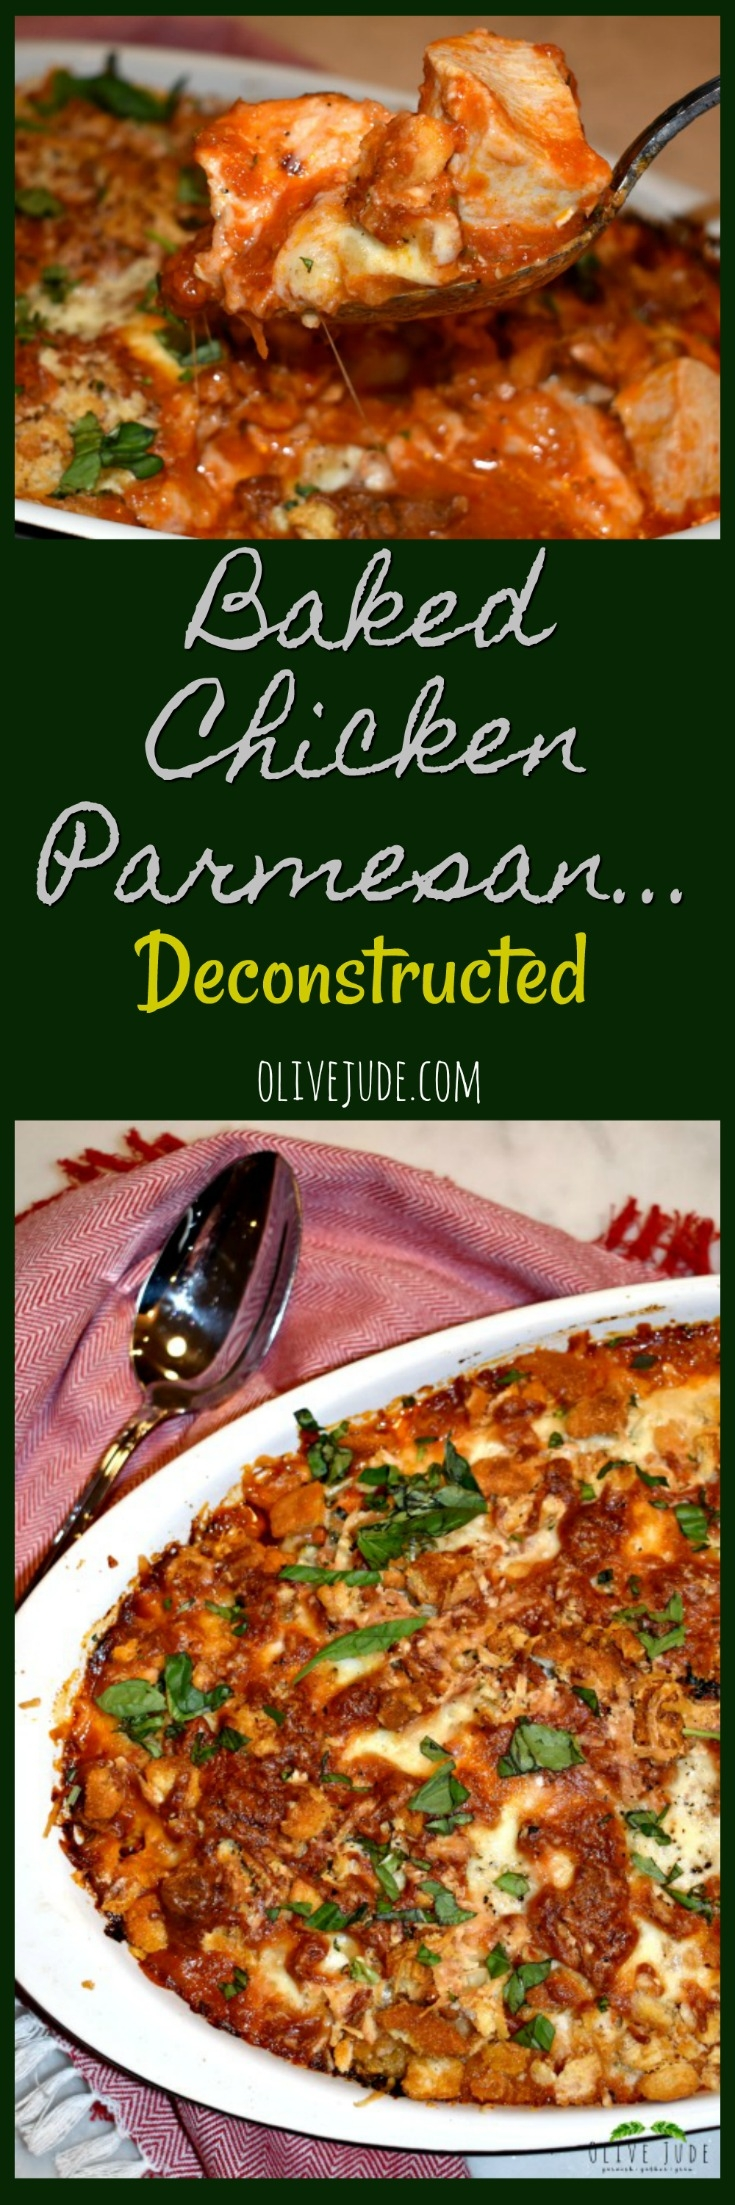 Baked Chicken Parmesan...Deconstructed